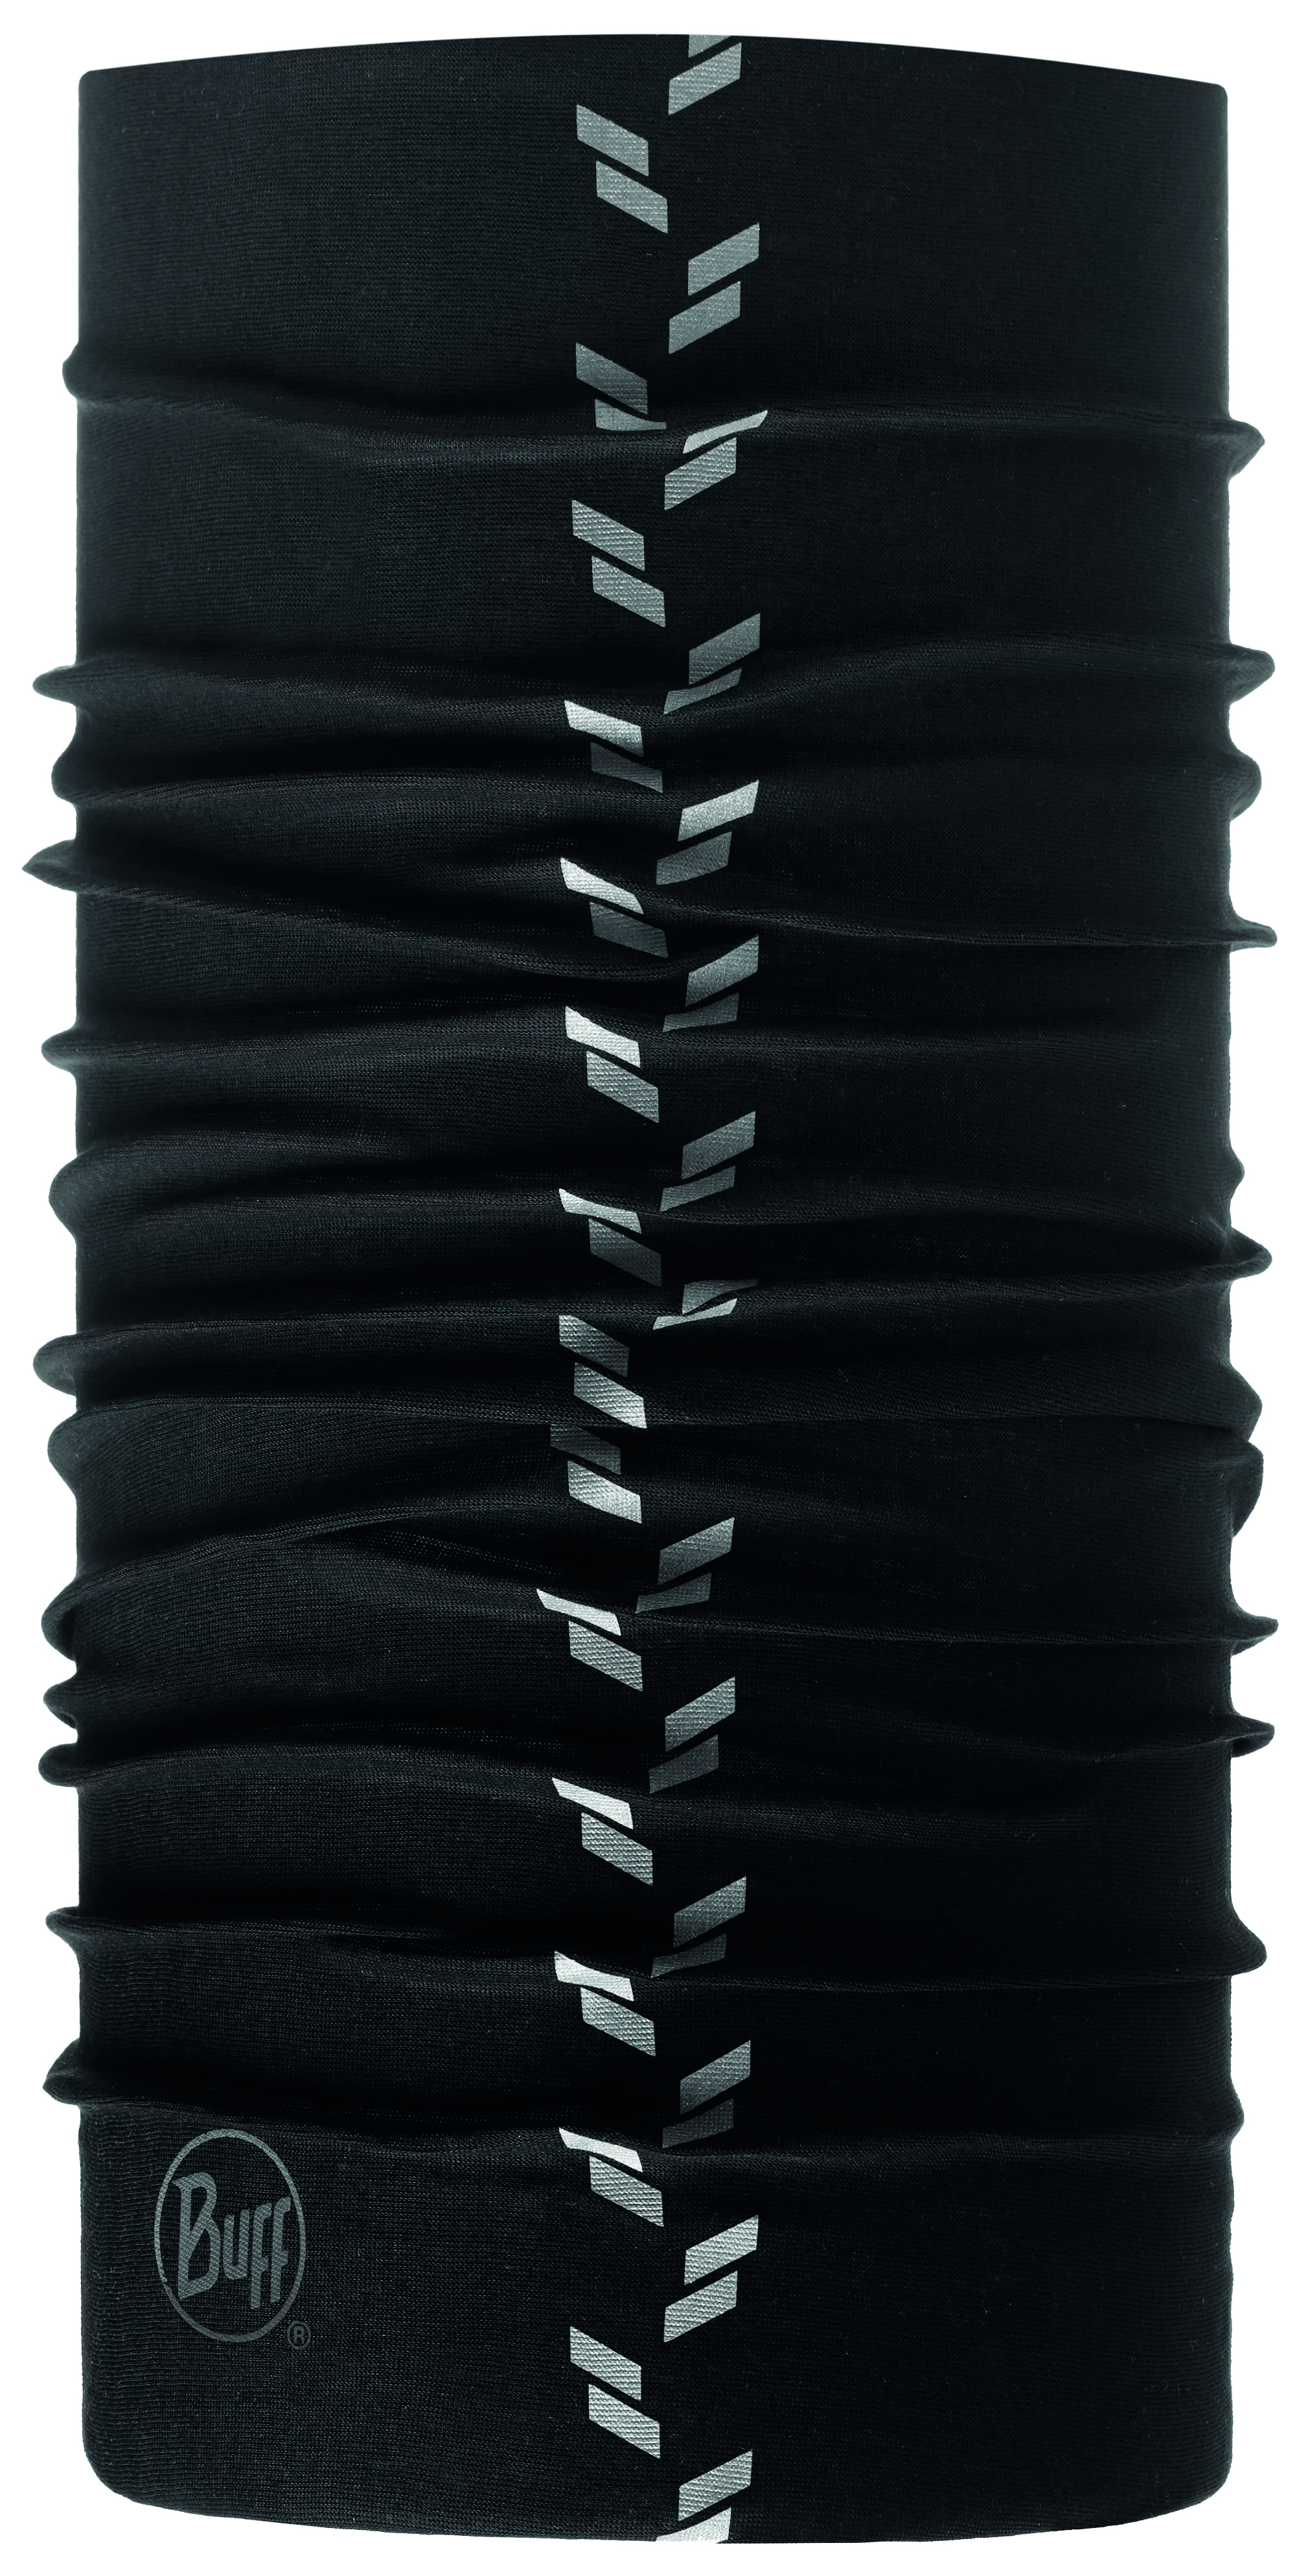 Бандана BUFF 2015-16 REFLECTIVE BUFF R-BLACK